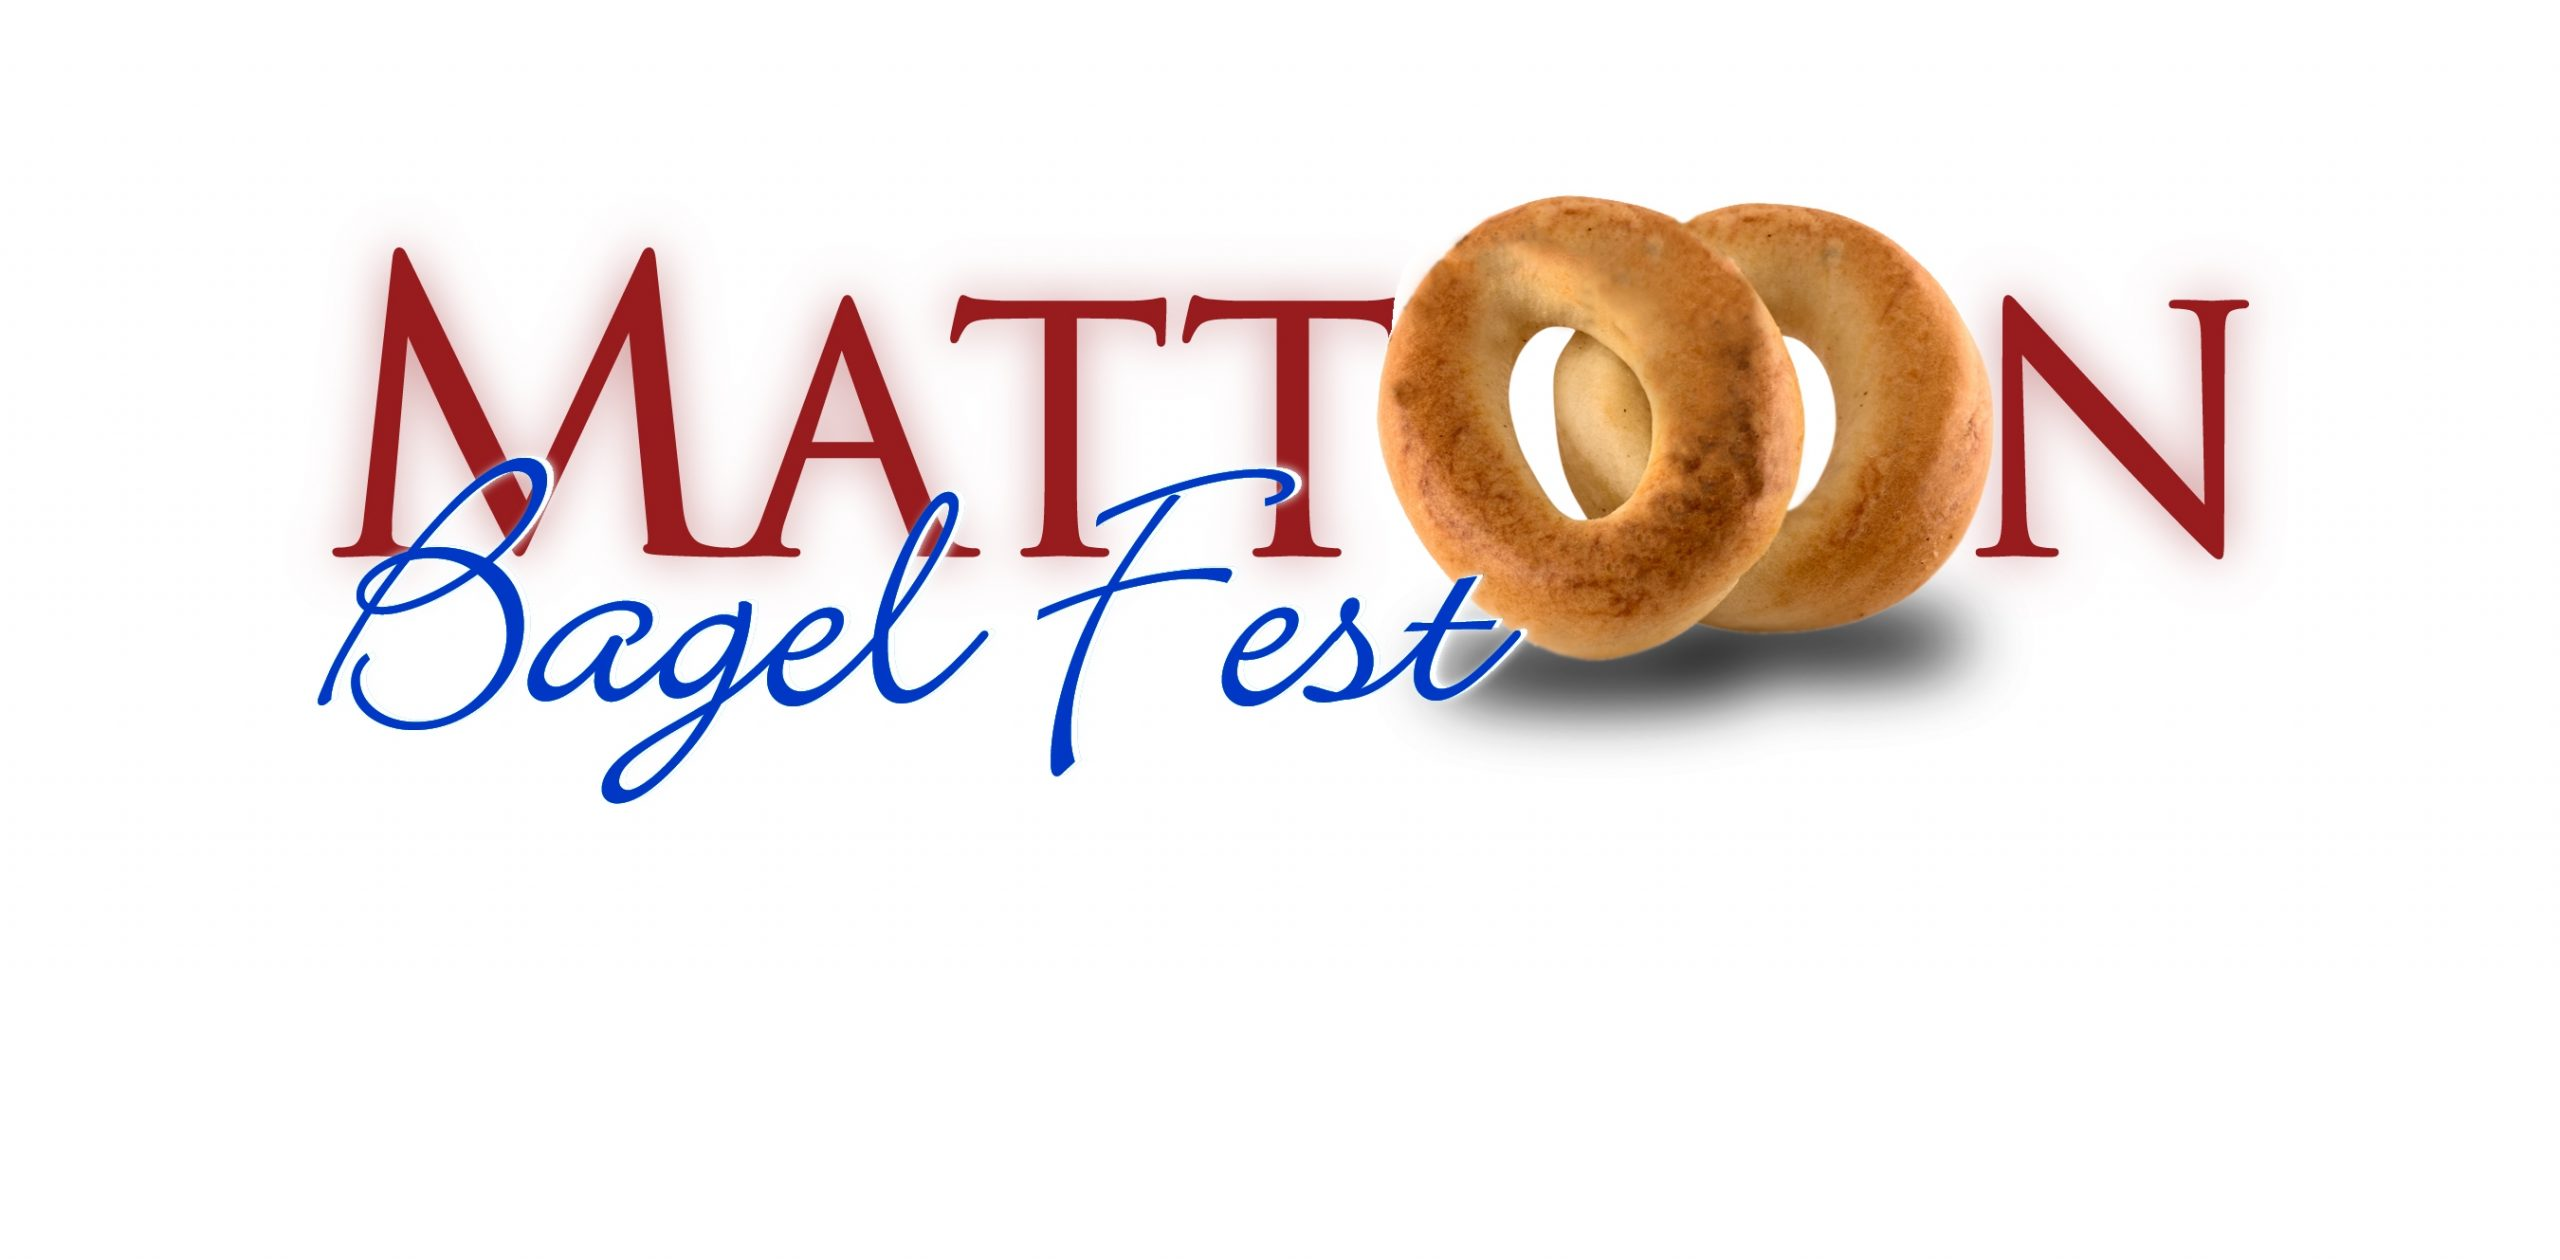 Mattoon Bagelfest: Saturday (July 22) Schedule